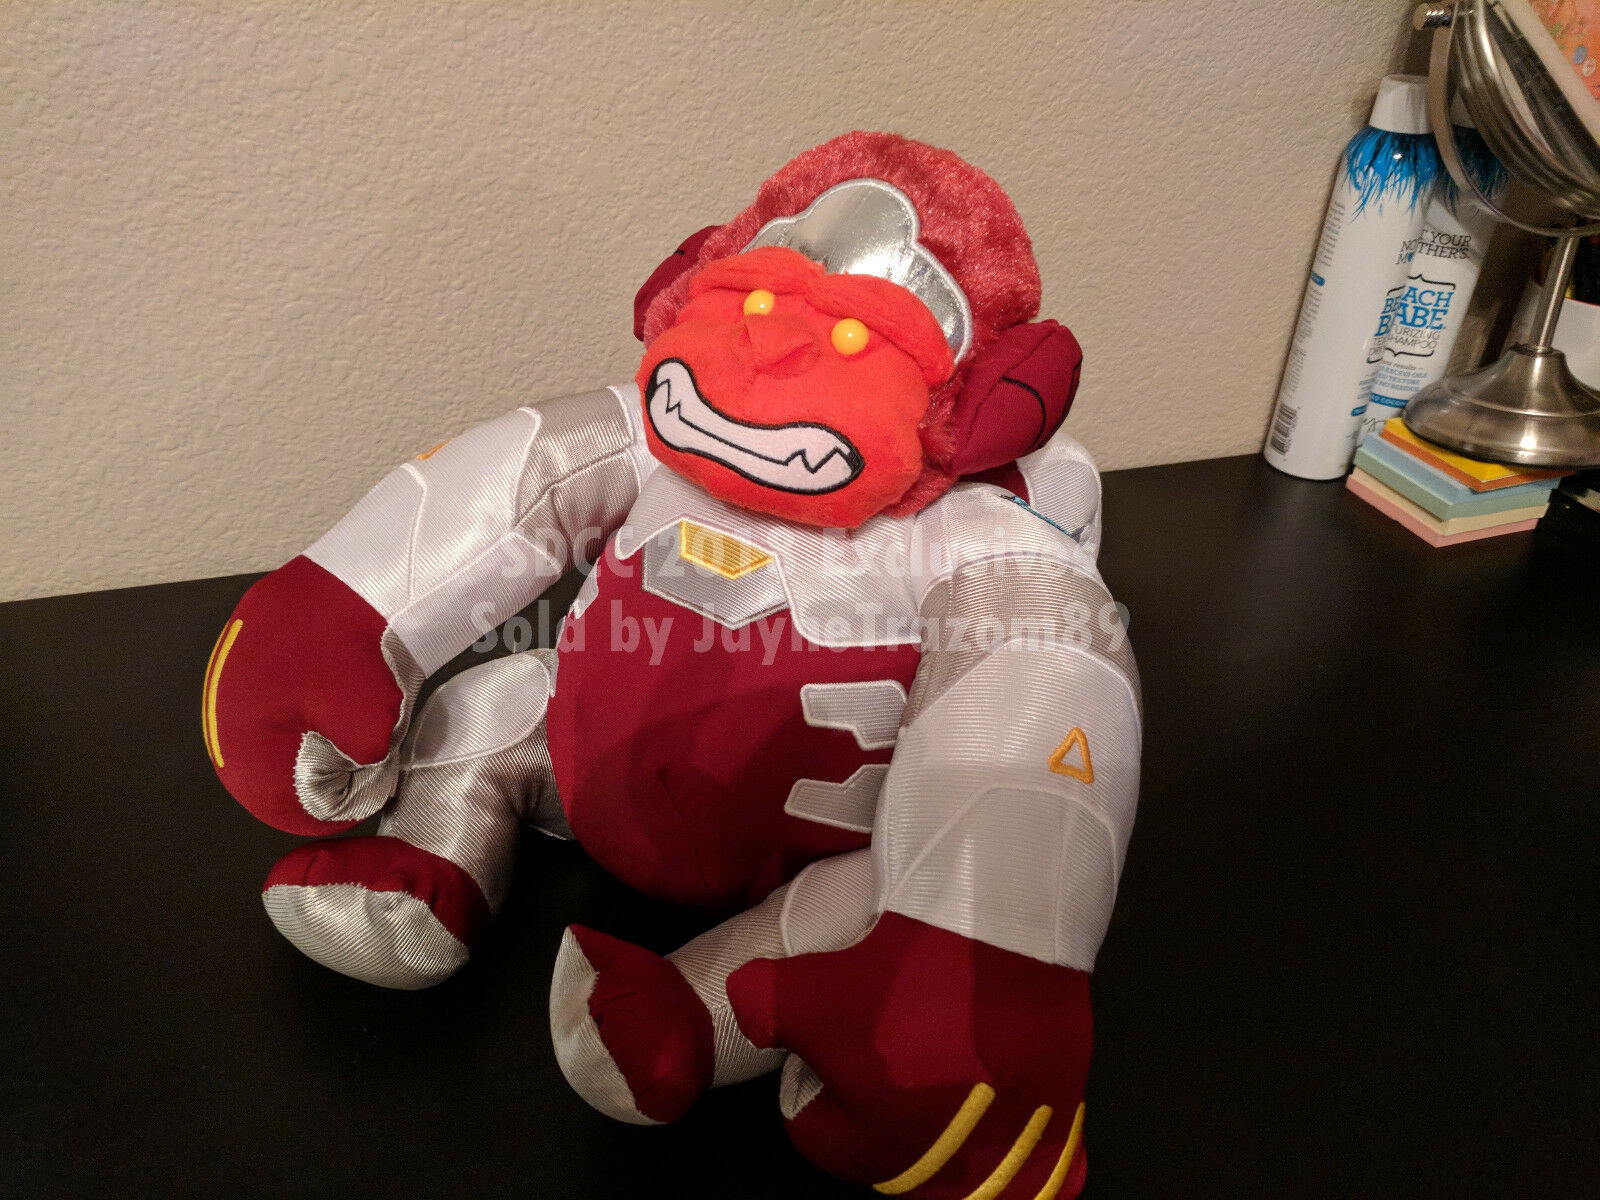 2018 SDCC Exclusive - Overwatch Rage Winston Supersize Plush - Blizzard